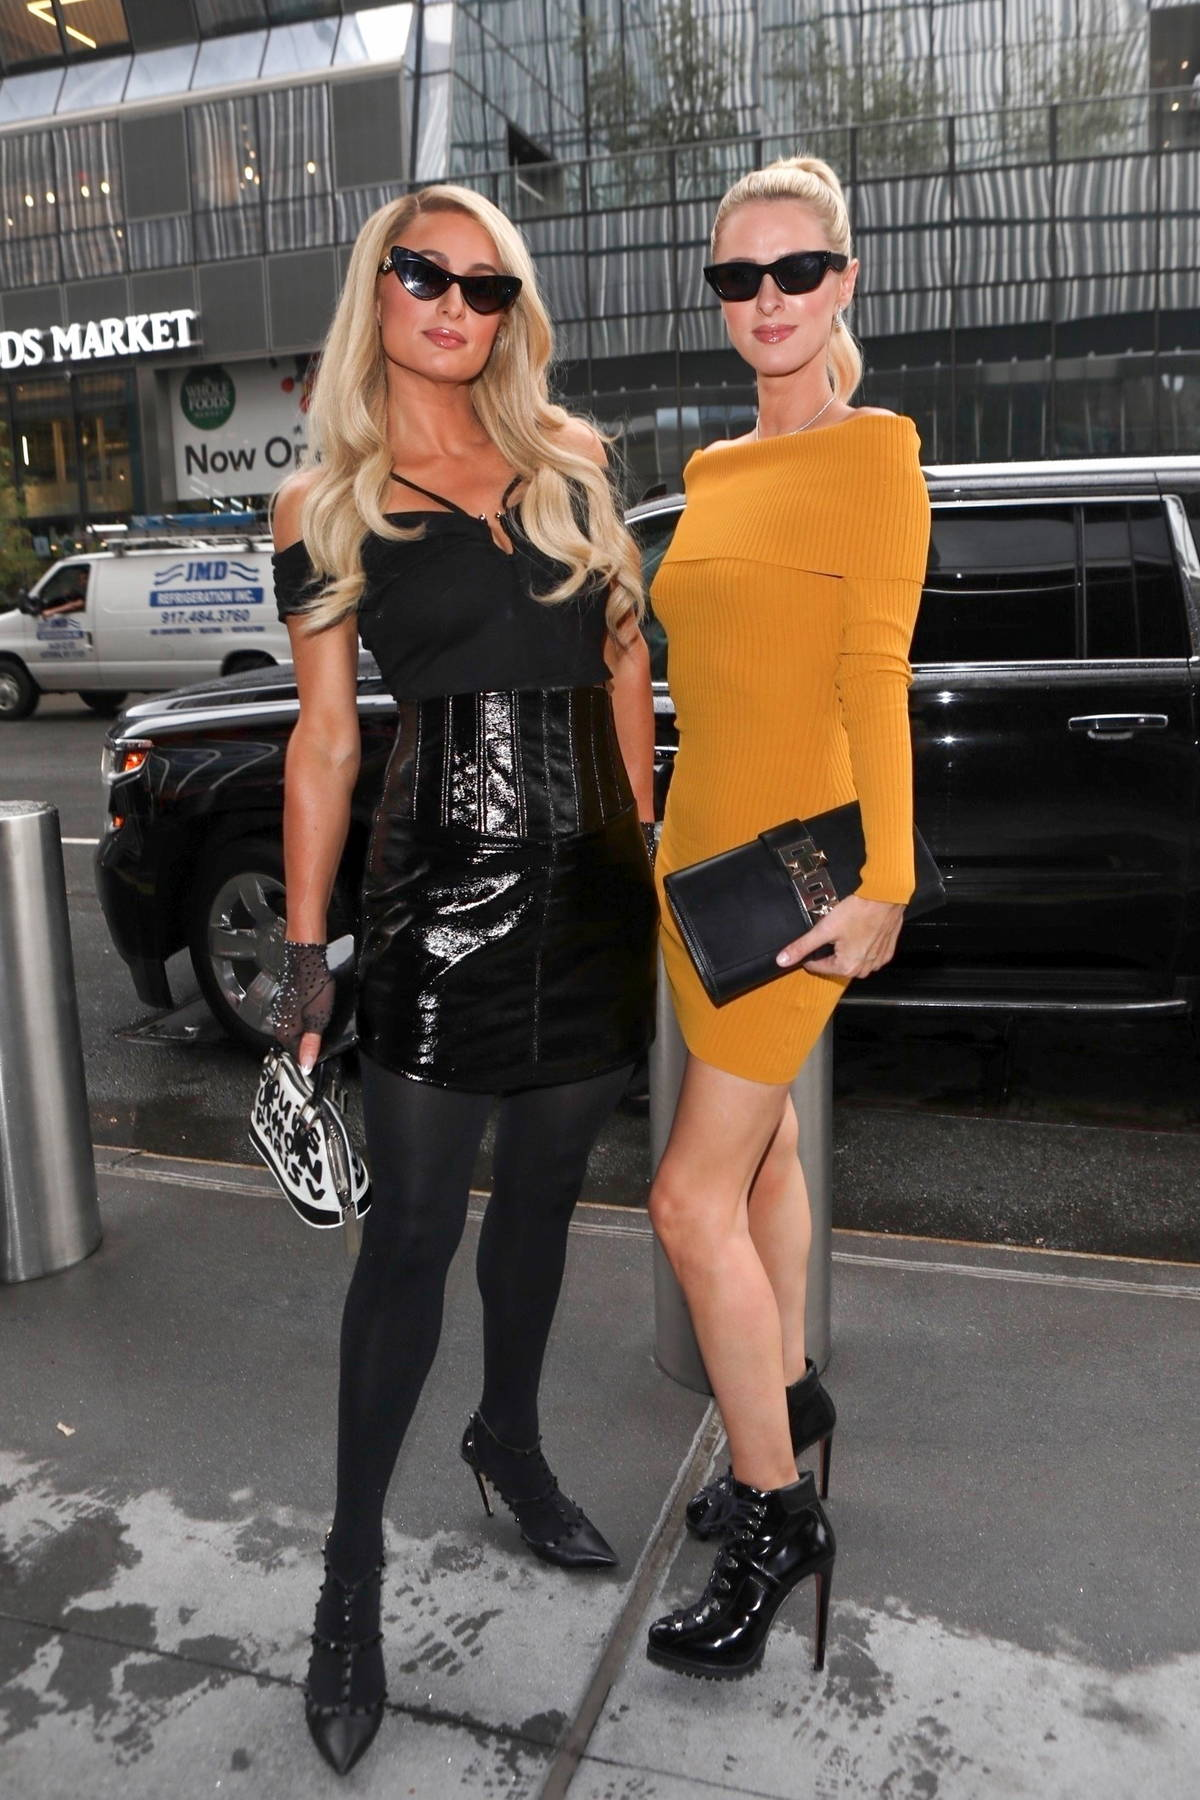 Paris and Nicky Hilton attend the Revolve Gallery inaugural event during New York Fashion Week at Hudson Yards in New York City